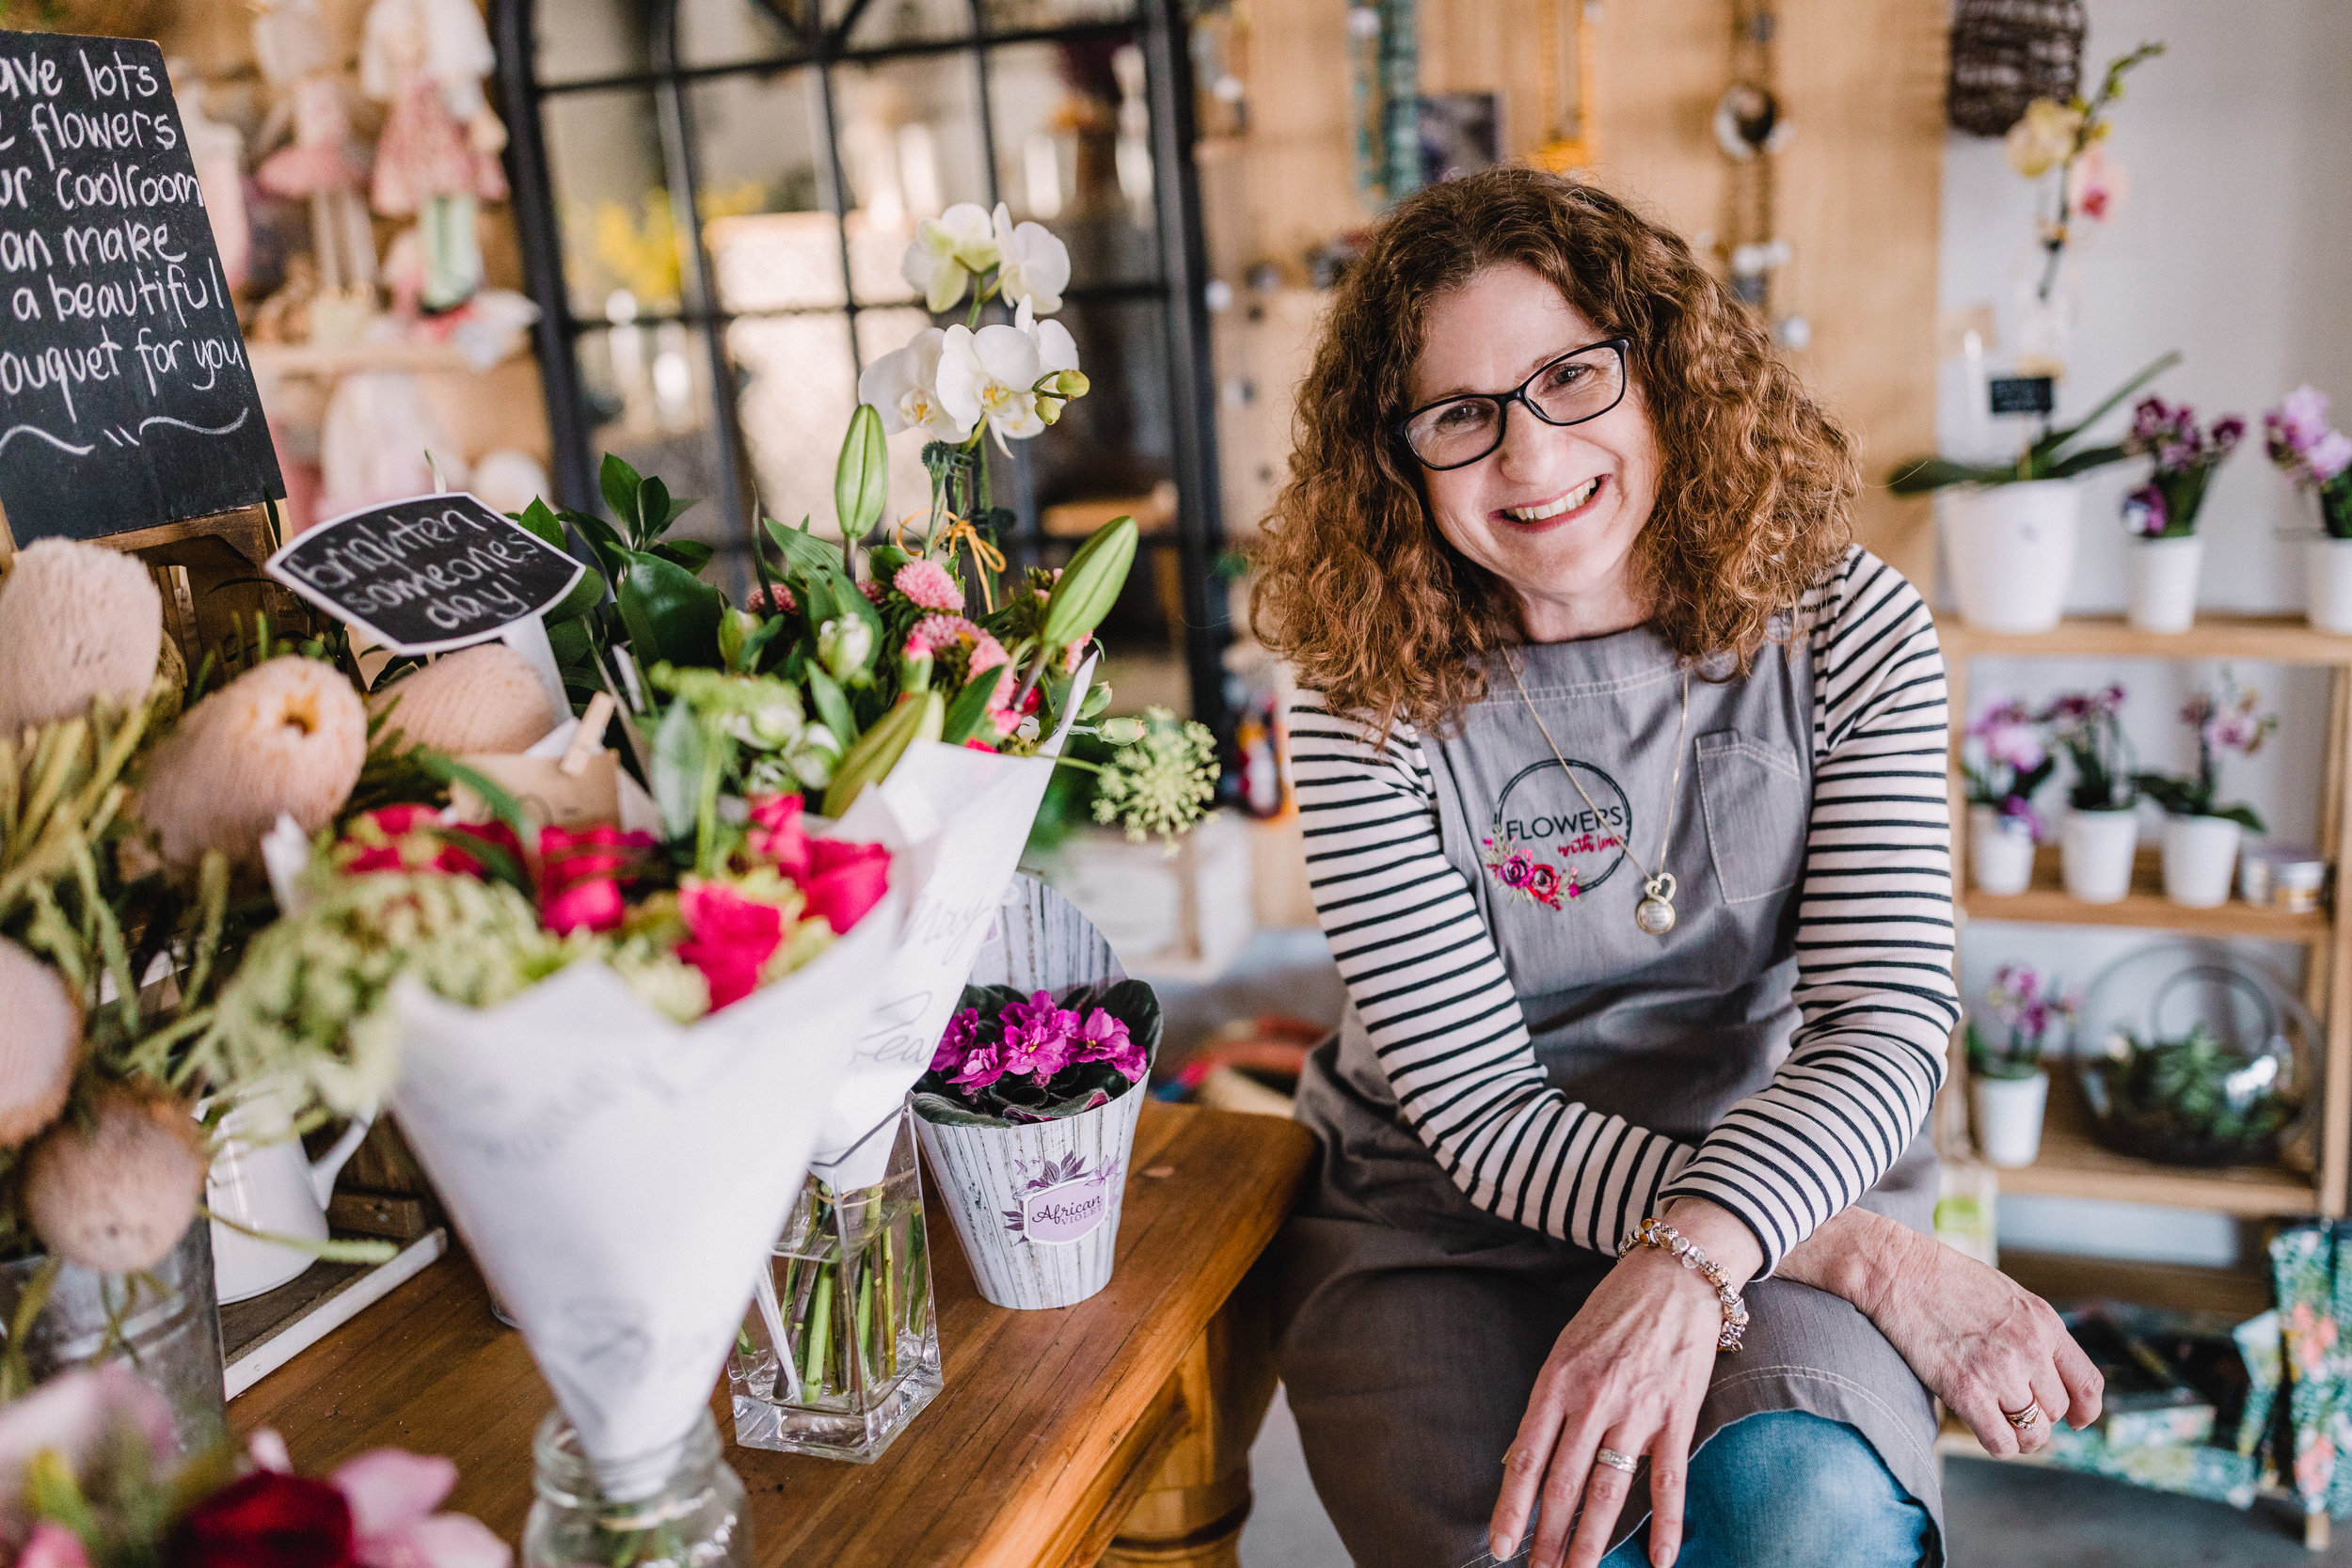 Florist who delivers flowers to Canberra, Queanbeyan, Googong and Jerrabomberra.